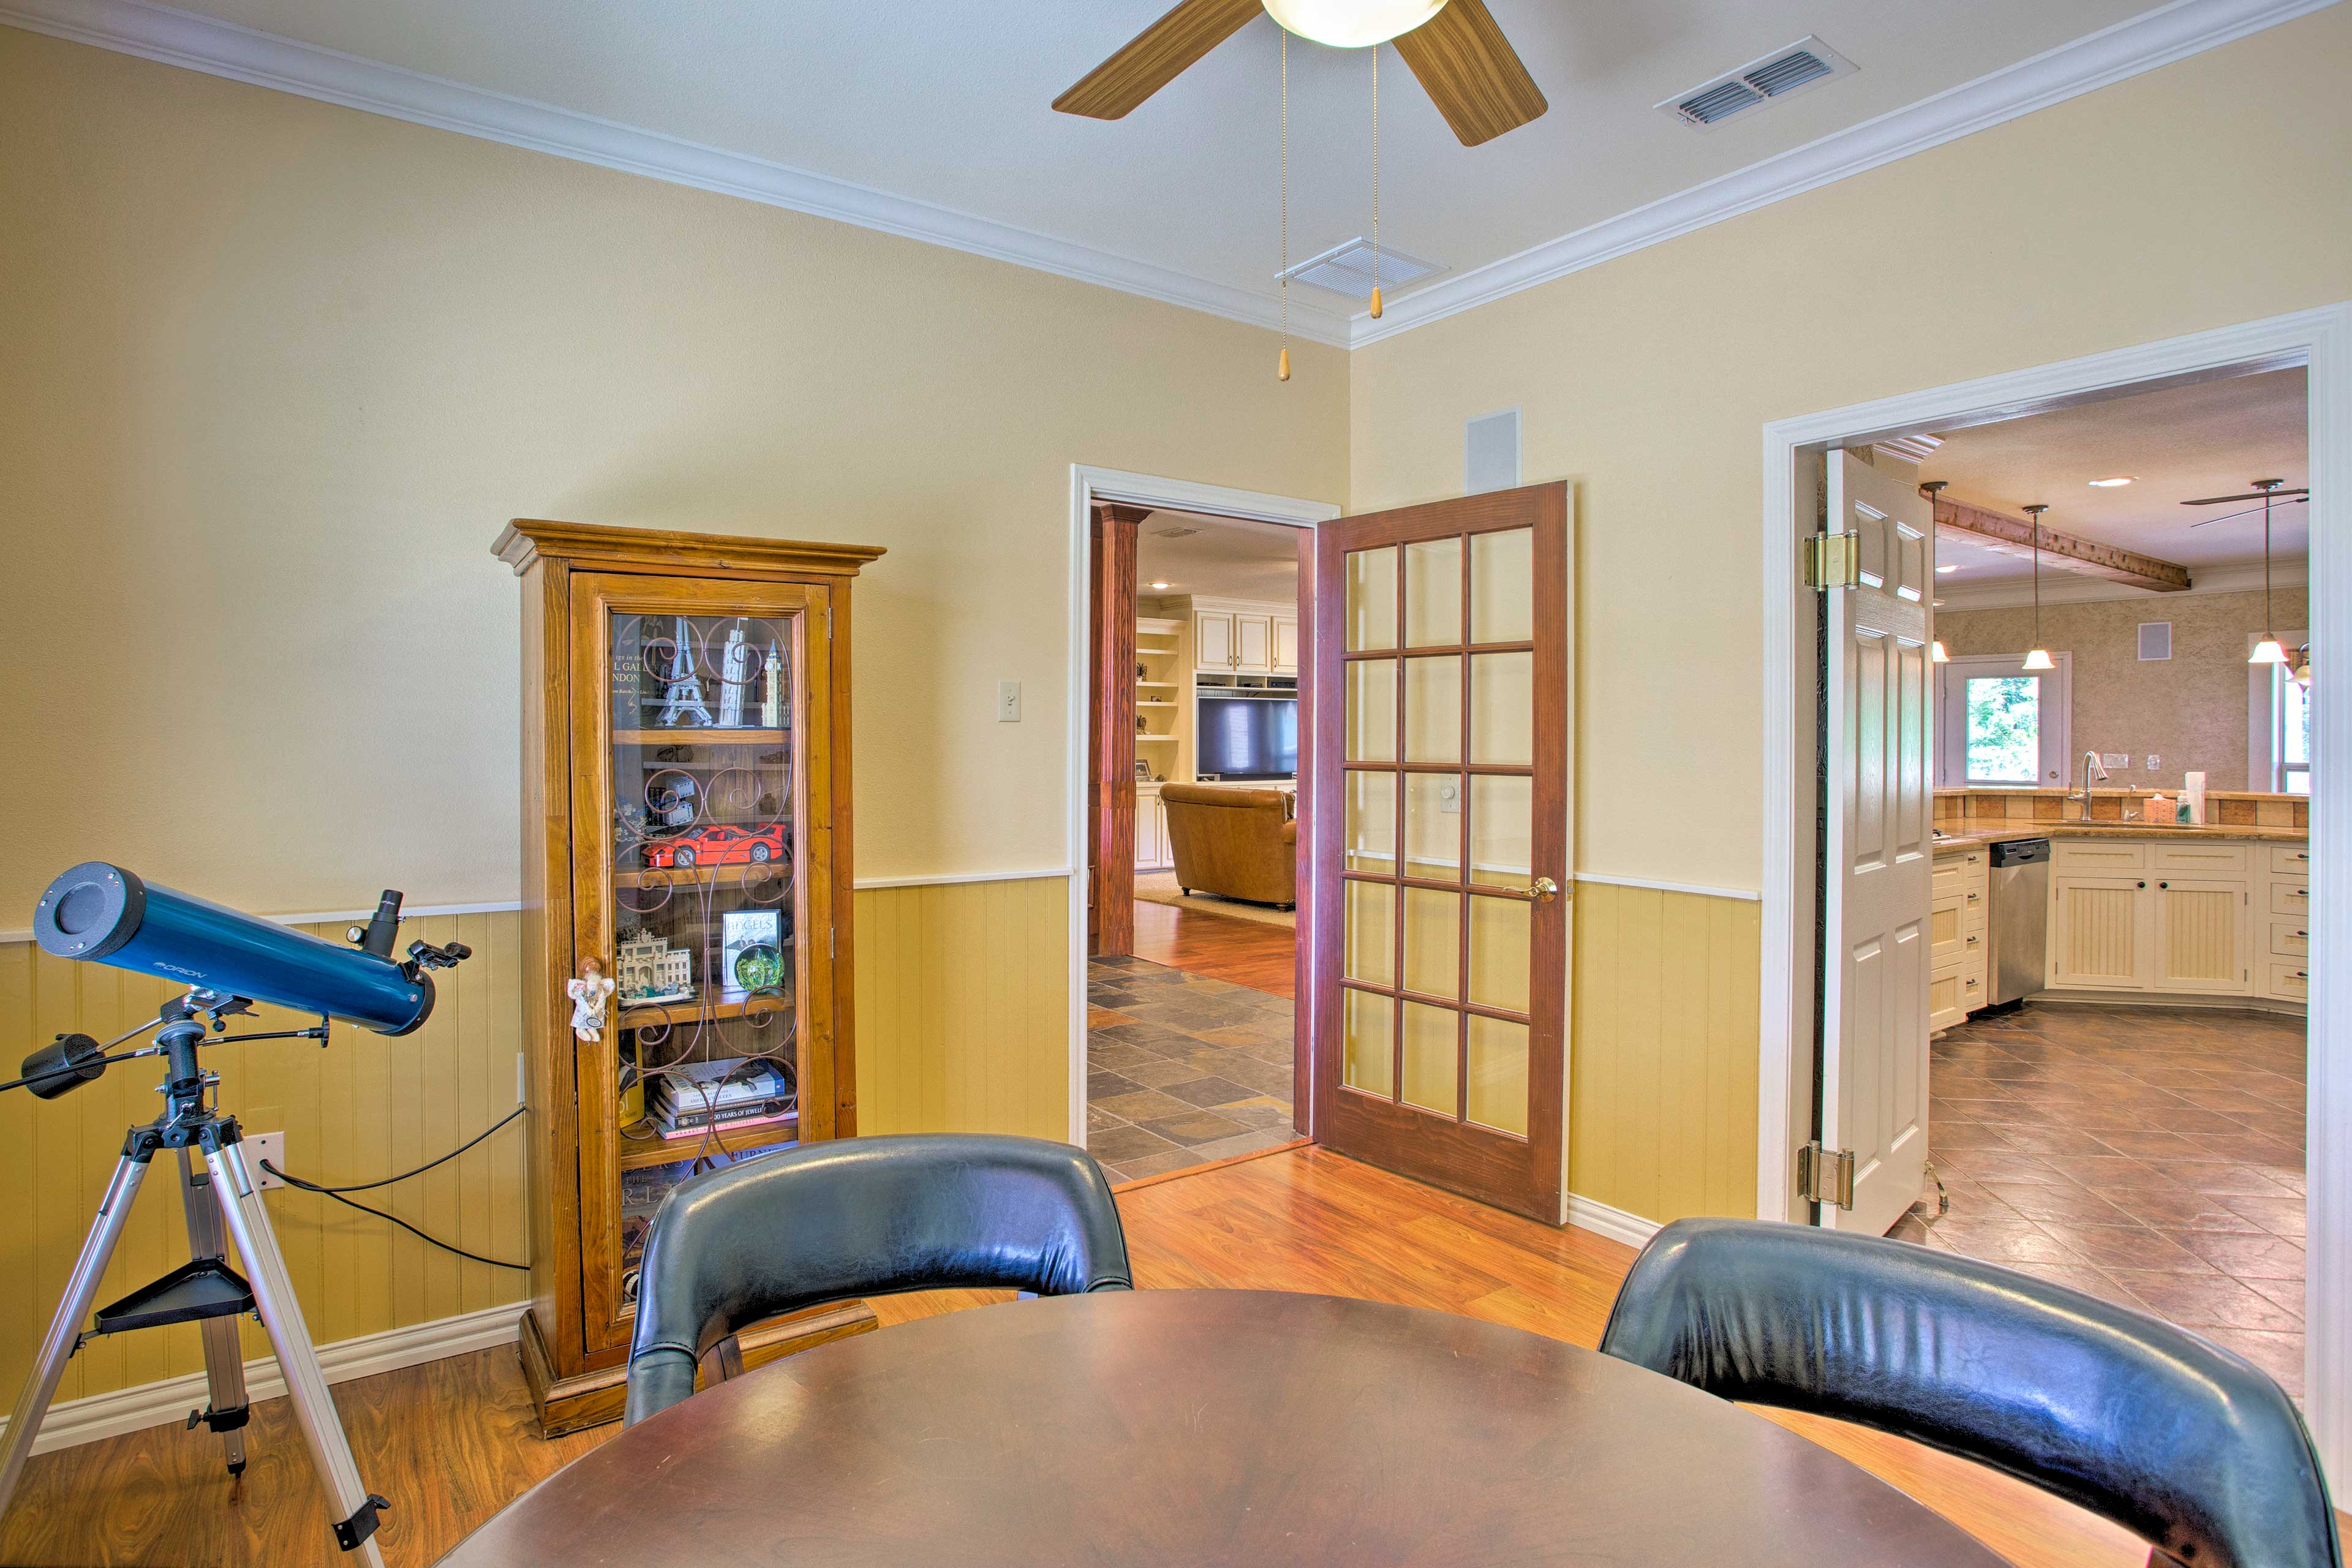 There's over 4,000 square feet of living space.